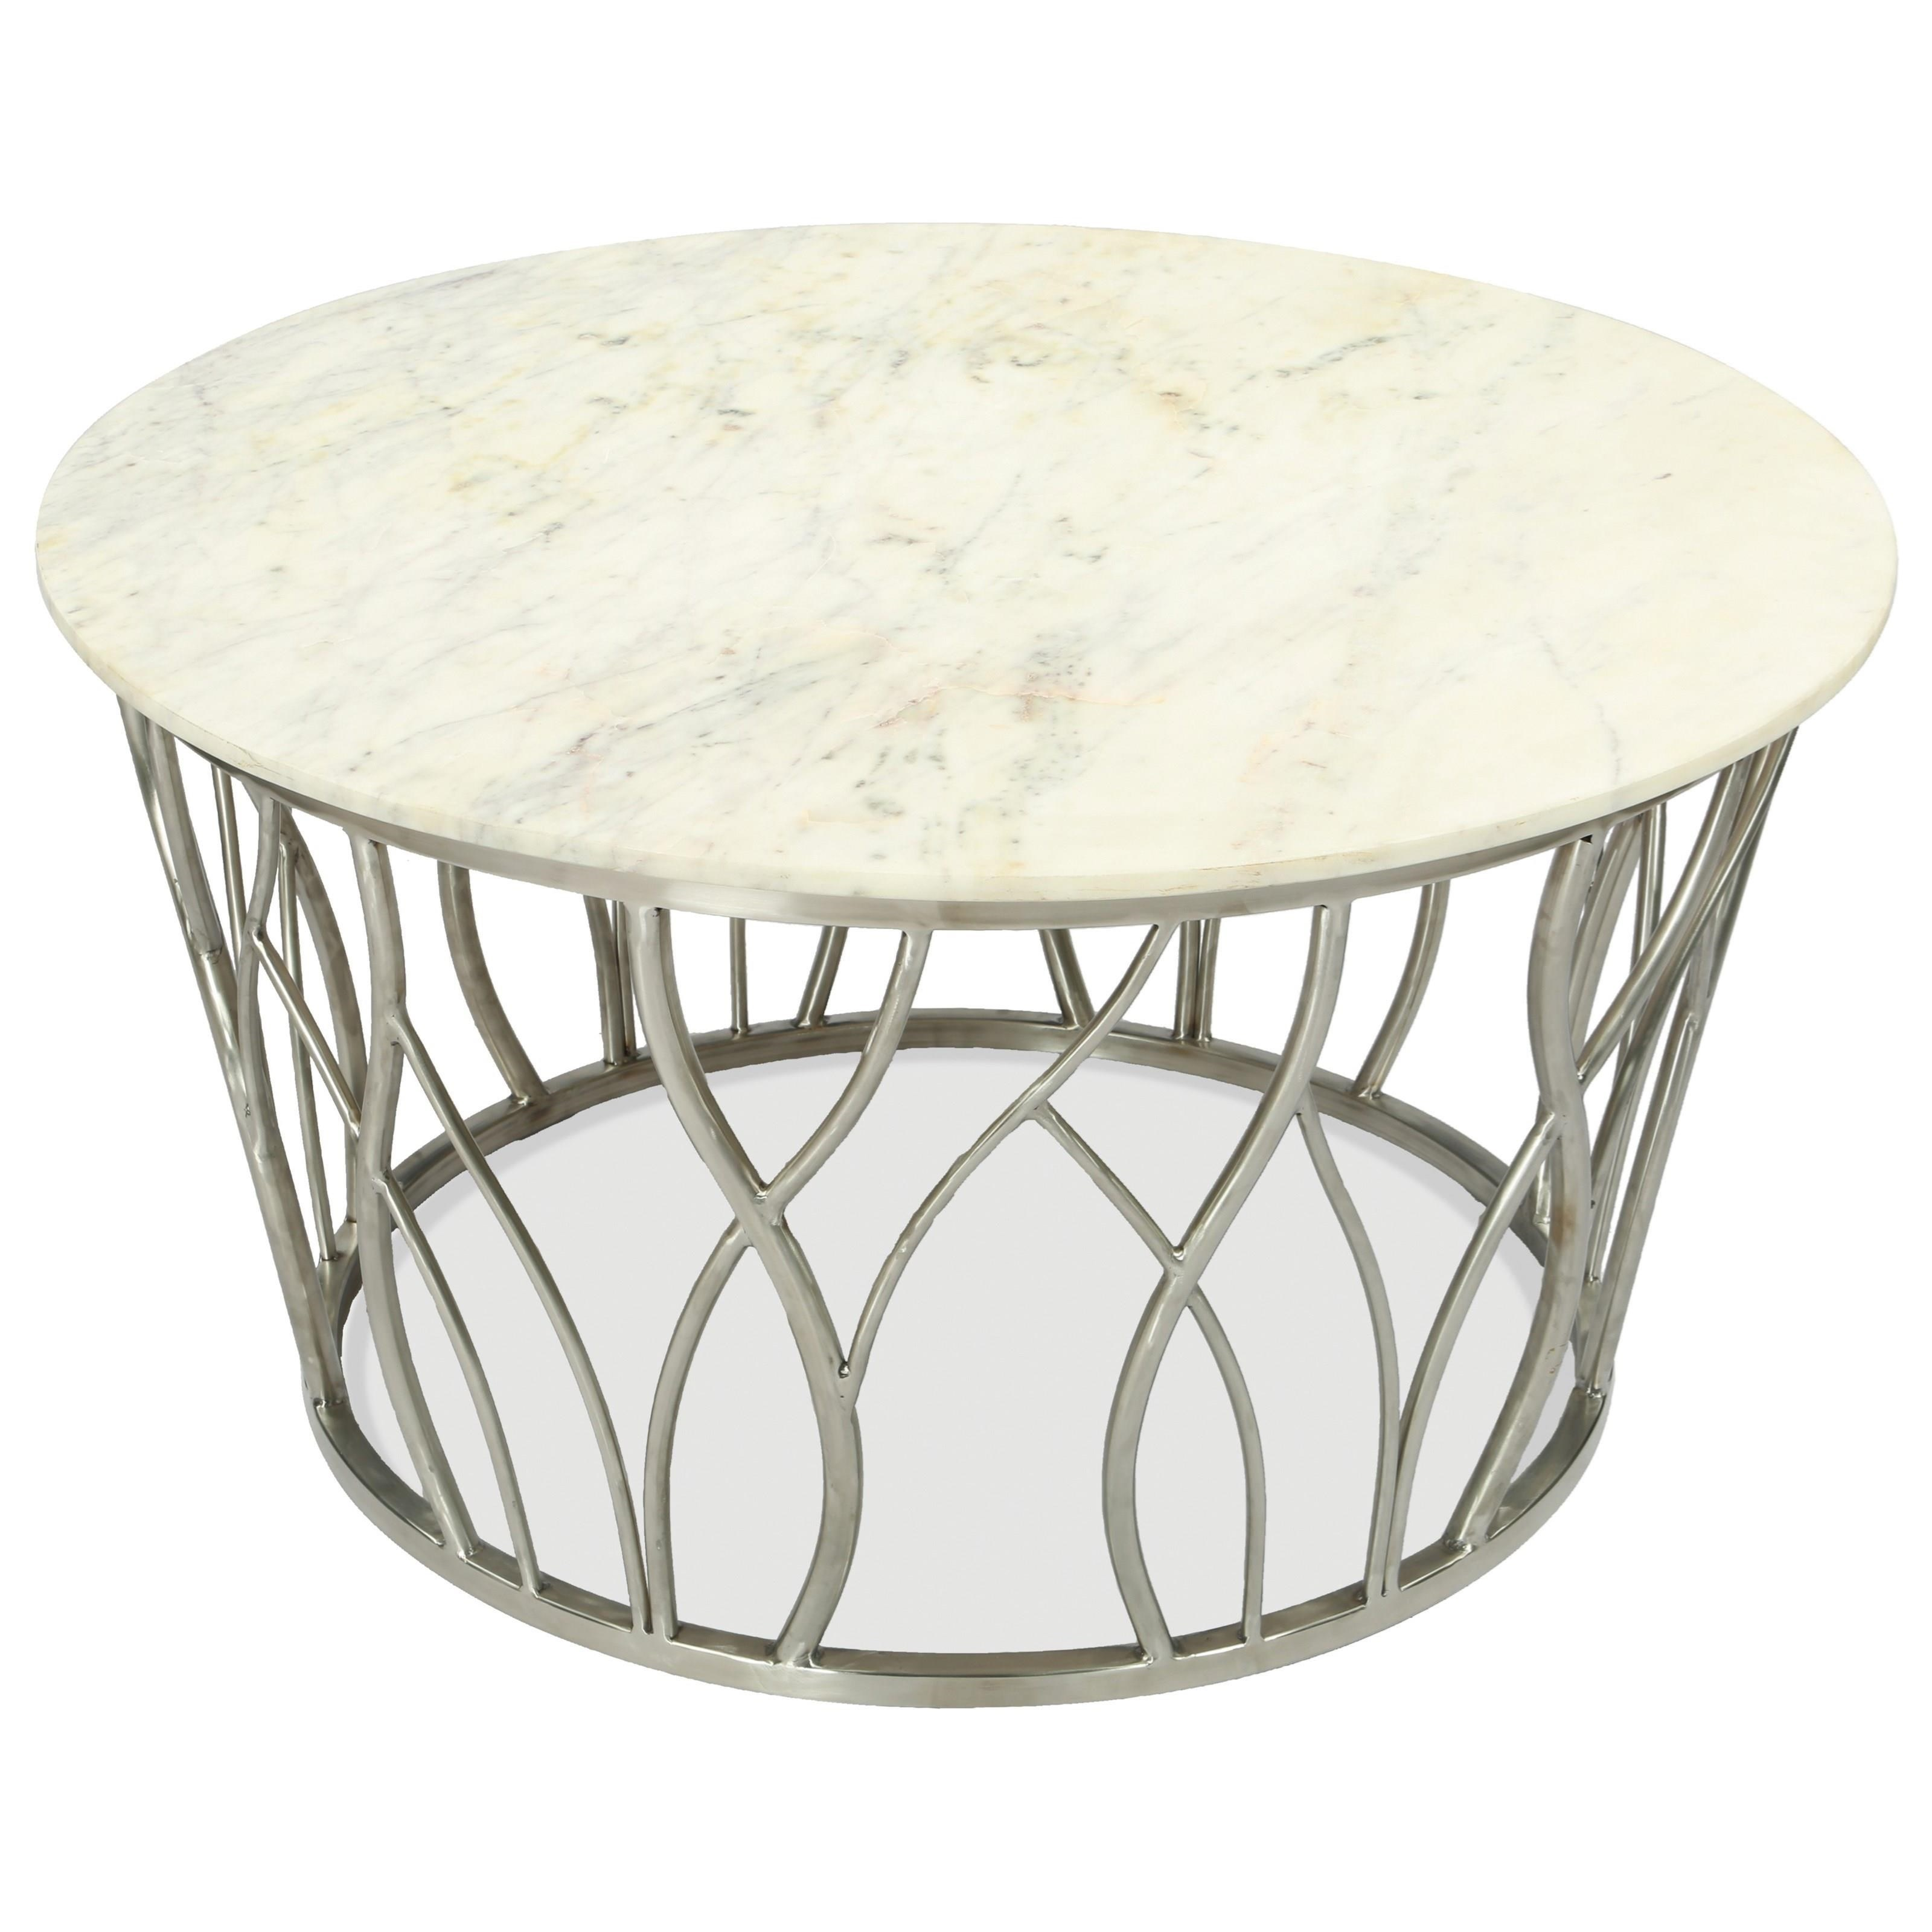 Ulysses Round Cocktail Table by Riverside Furniture at Darvin Furniture